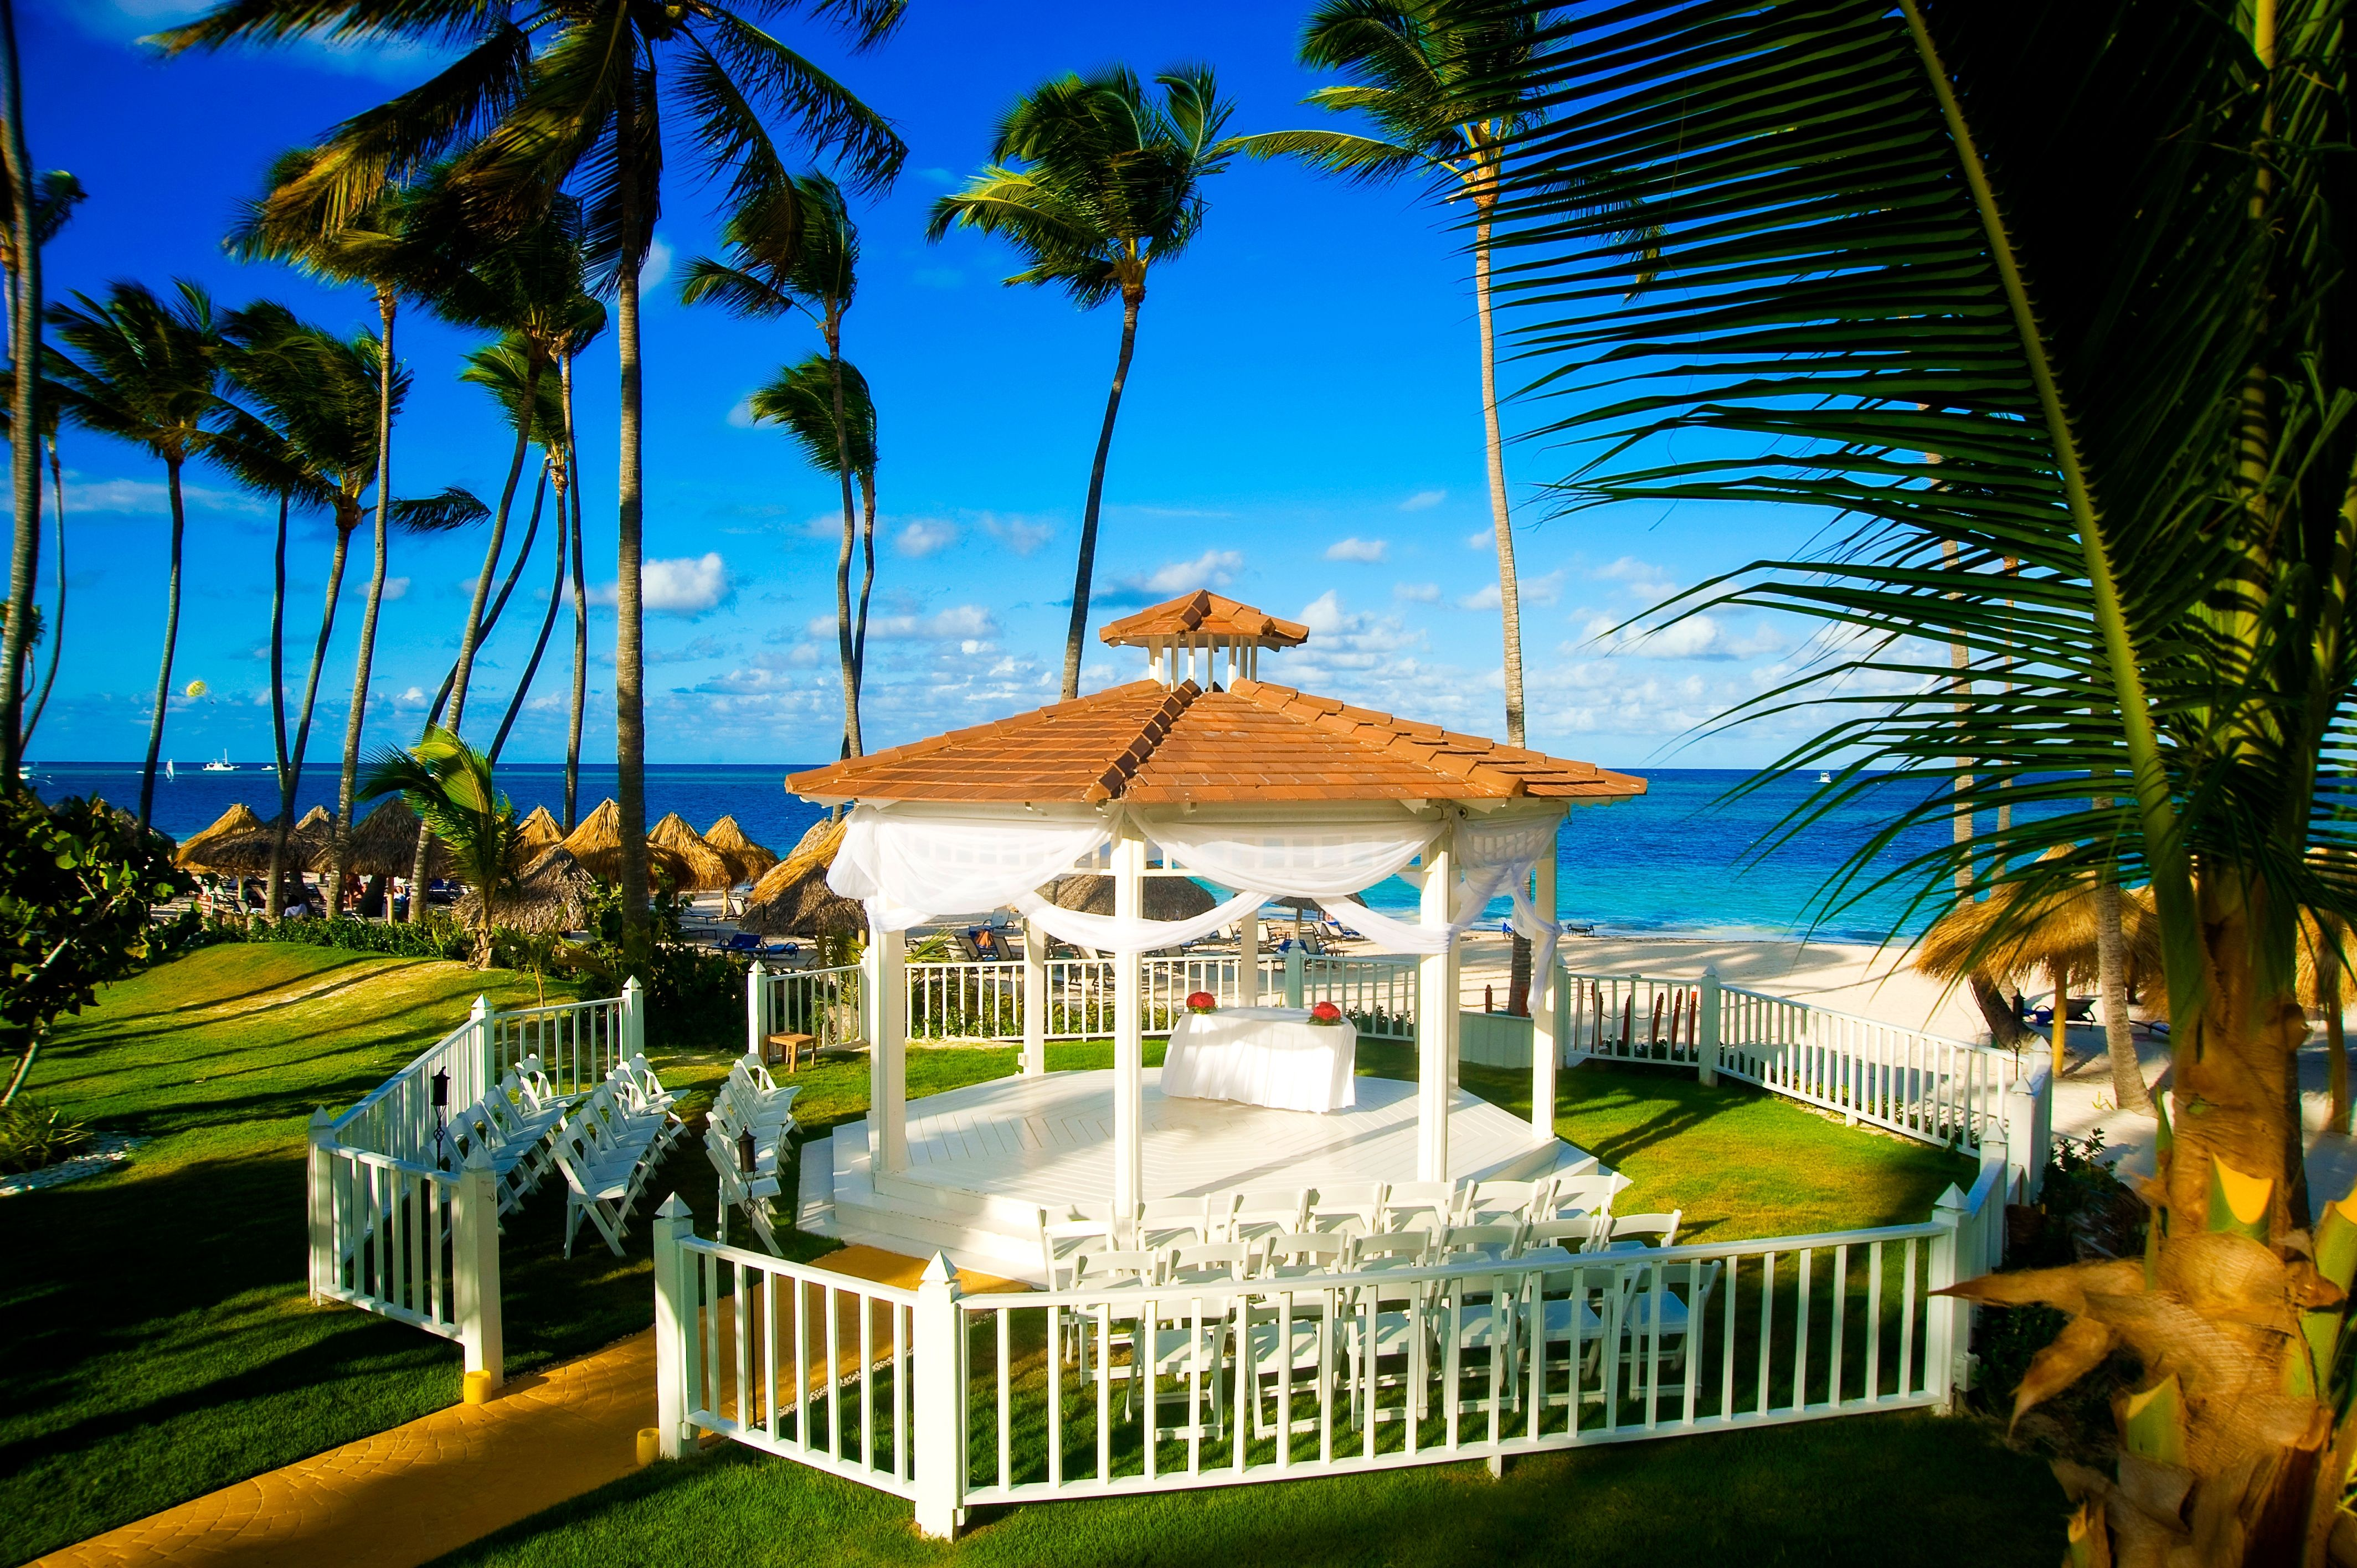 Meliá Caribe Tropical All Inclusive Beach Golf Resort Weddings Venues Packages In Punta Cana Dominican Republic